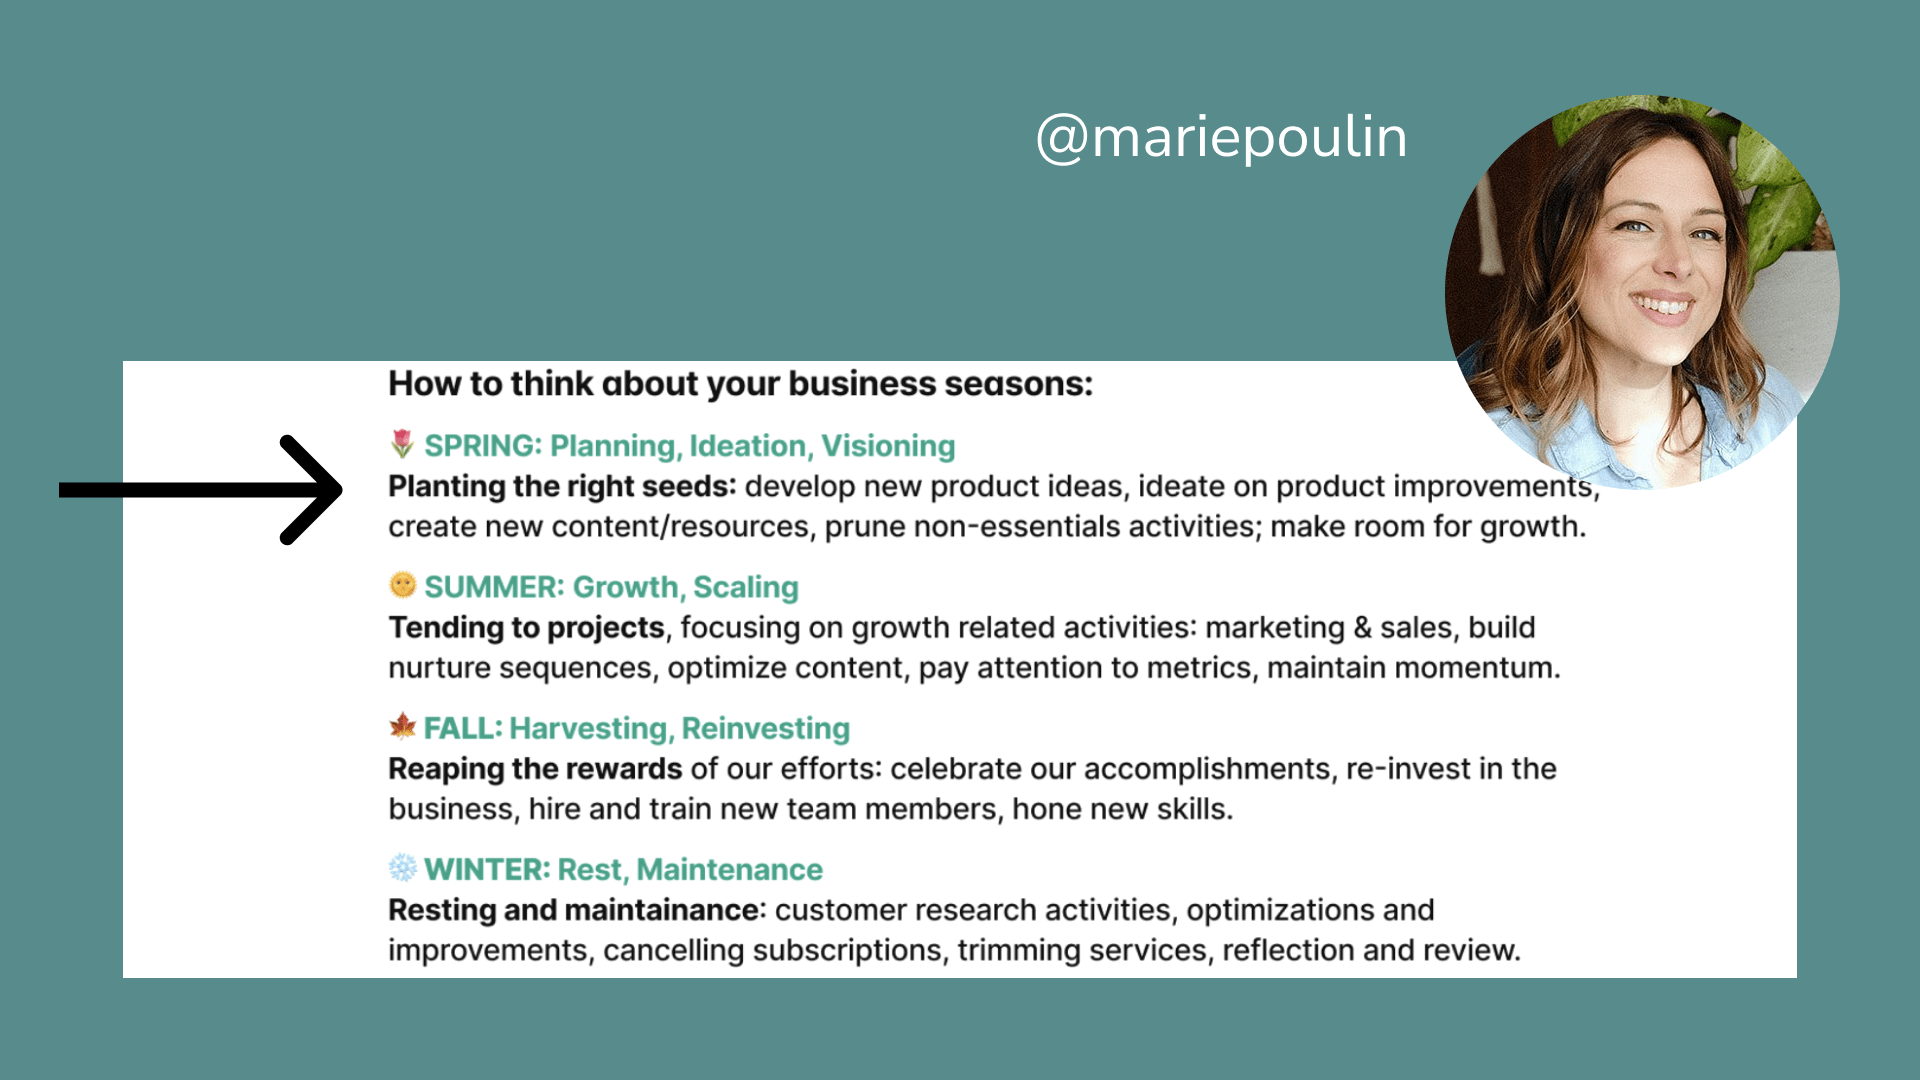 How to think about your business seasons